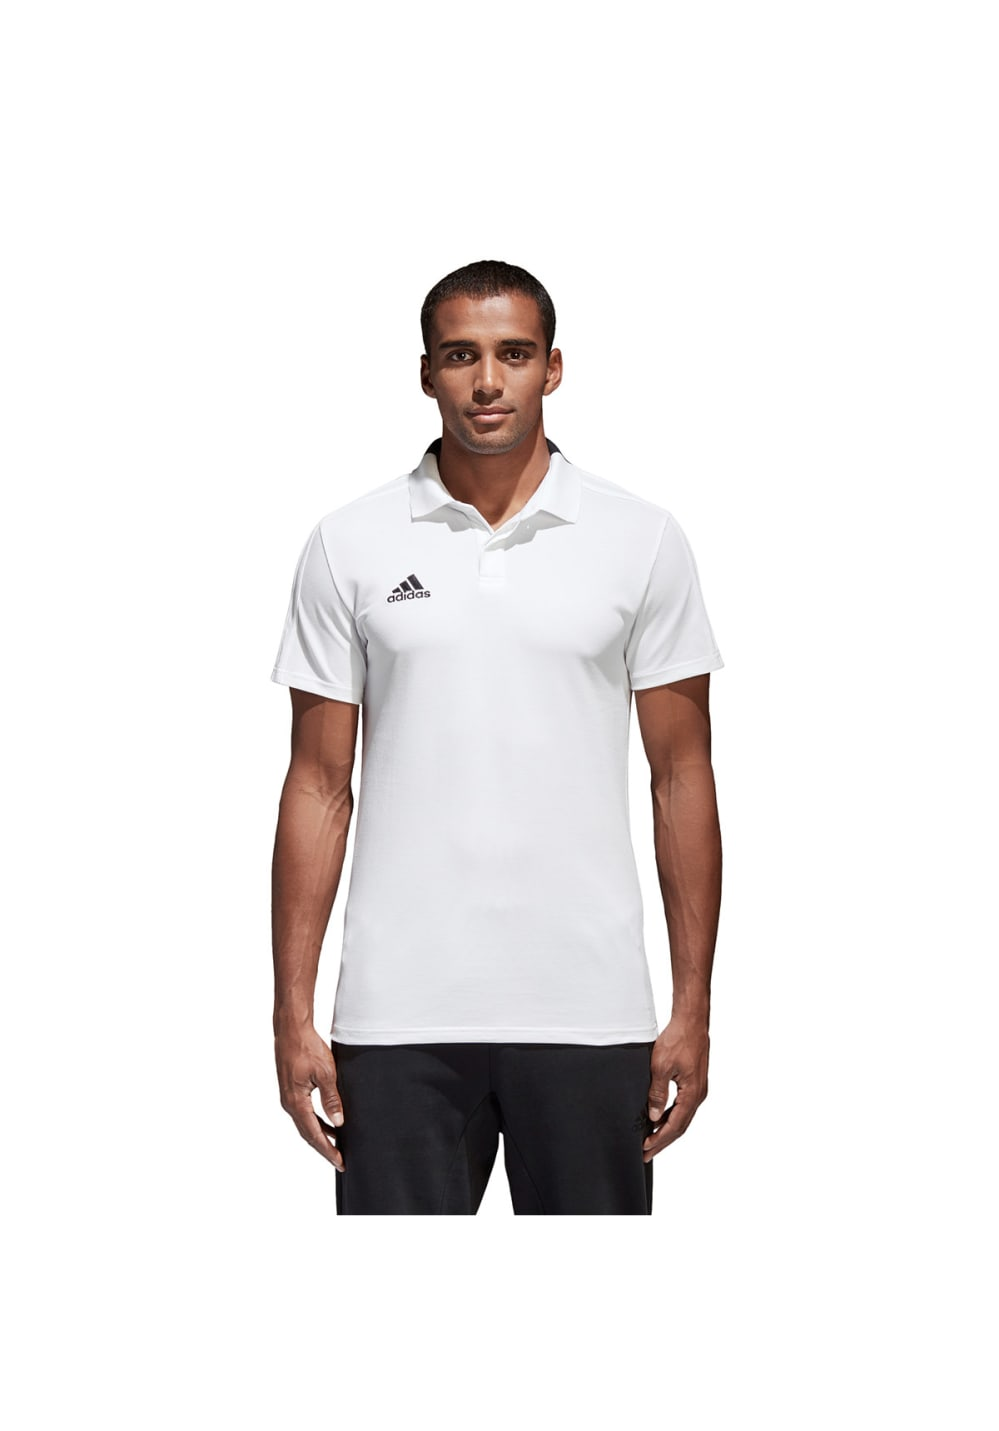 clearance sale sports shoes reputable site adidas Condivo 18 Cotton Poloshirt - Casual clothing for Men - White